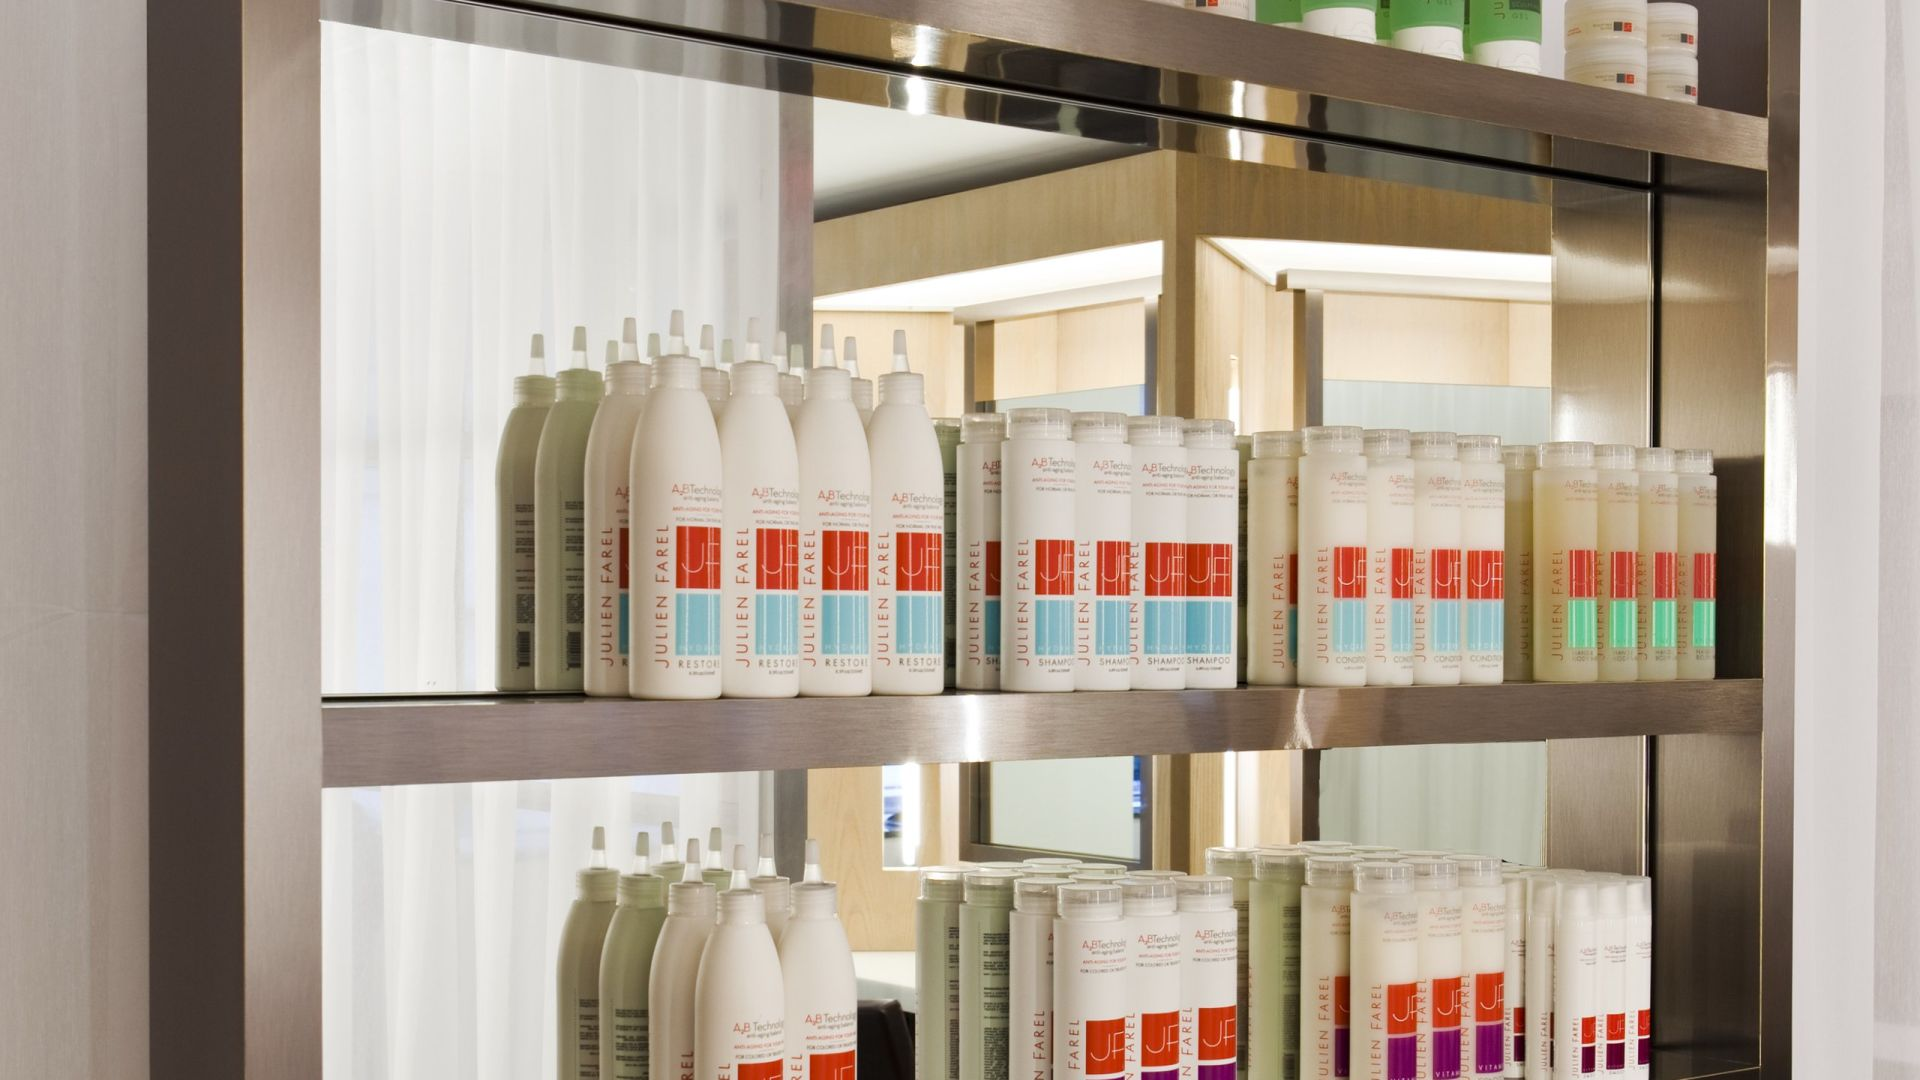 JF Product | Julien Farel Restore Salon & Spa | Loews Regency New York Hotel